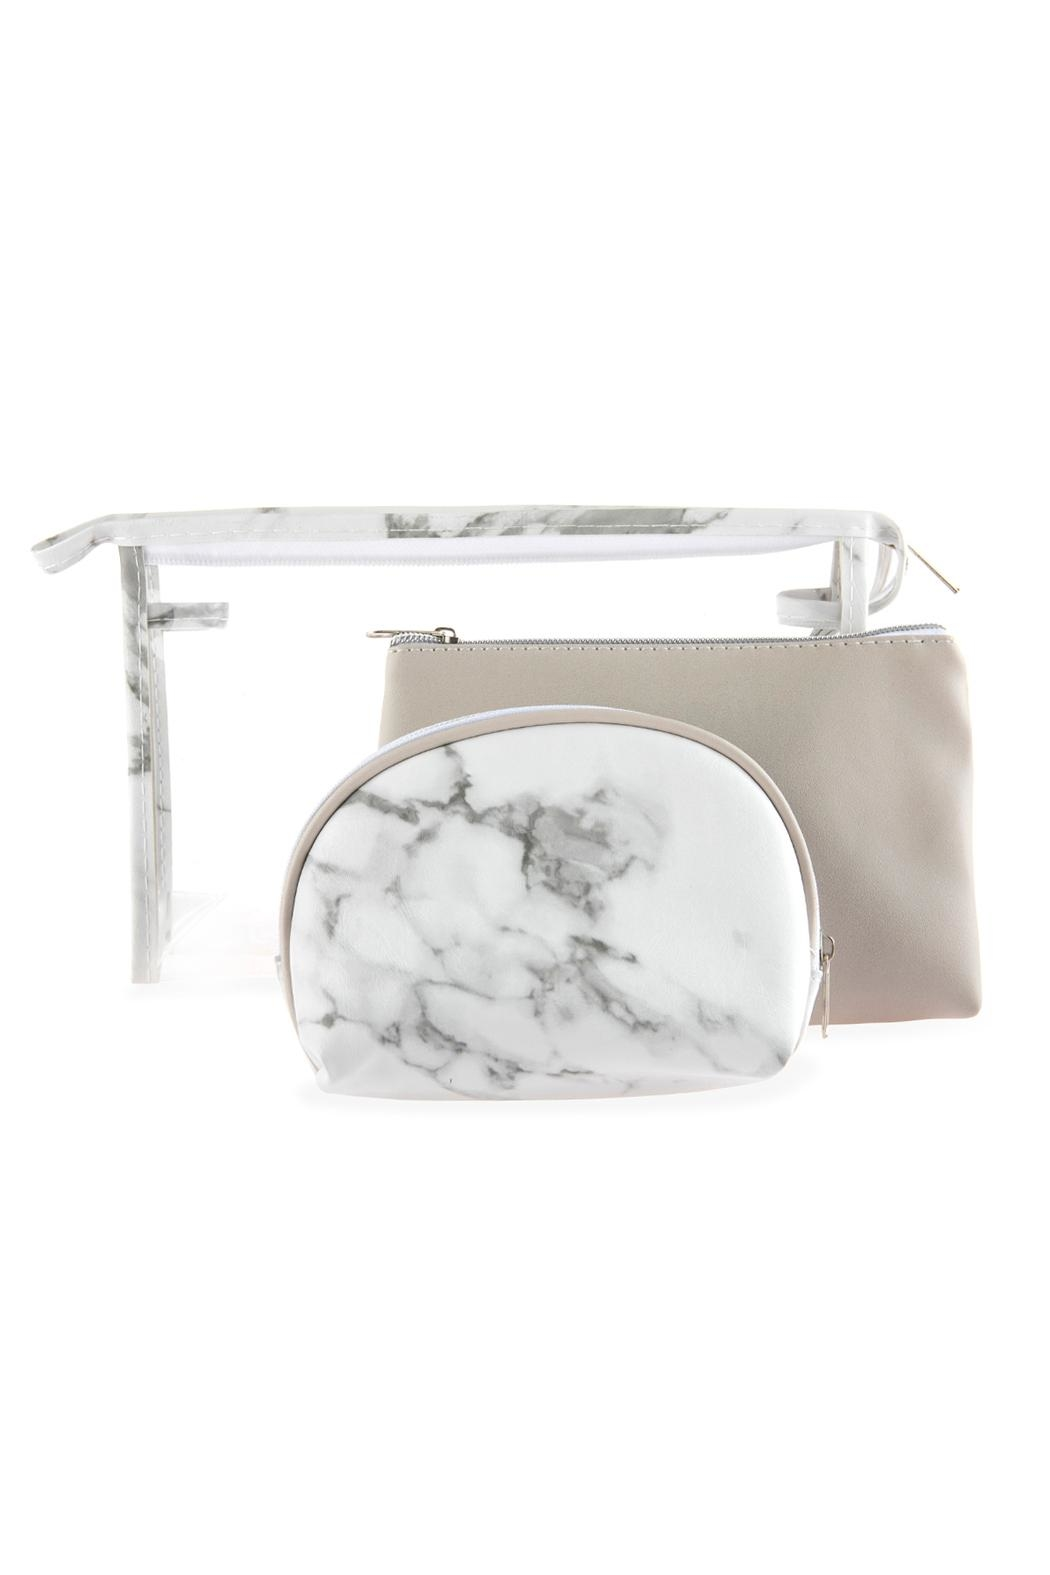 Riah Fashion Clear-Cosmetic-Bags With 2-Sets-Of-Leather-Pouches - Front Cropped Image